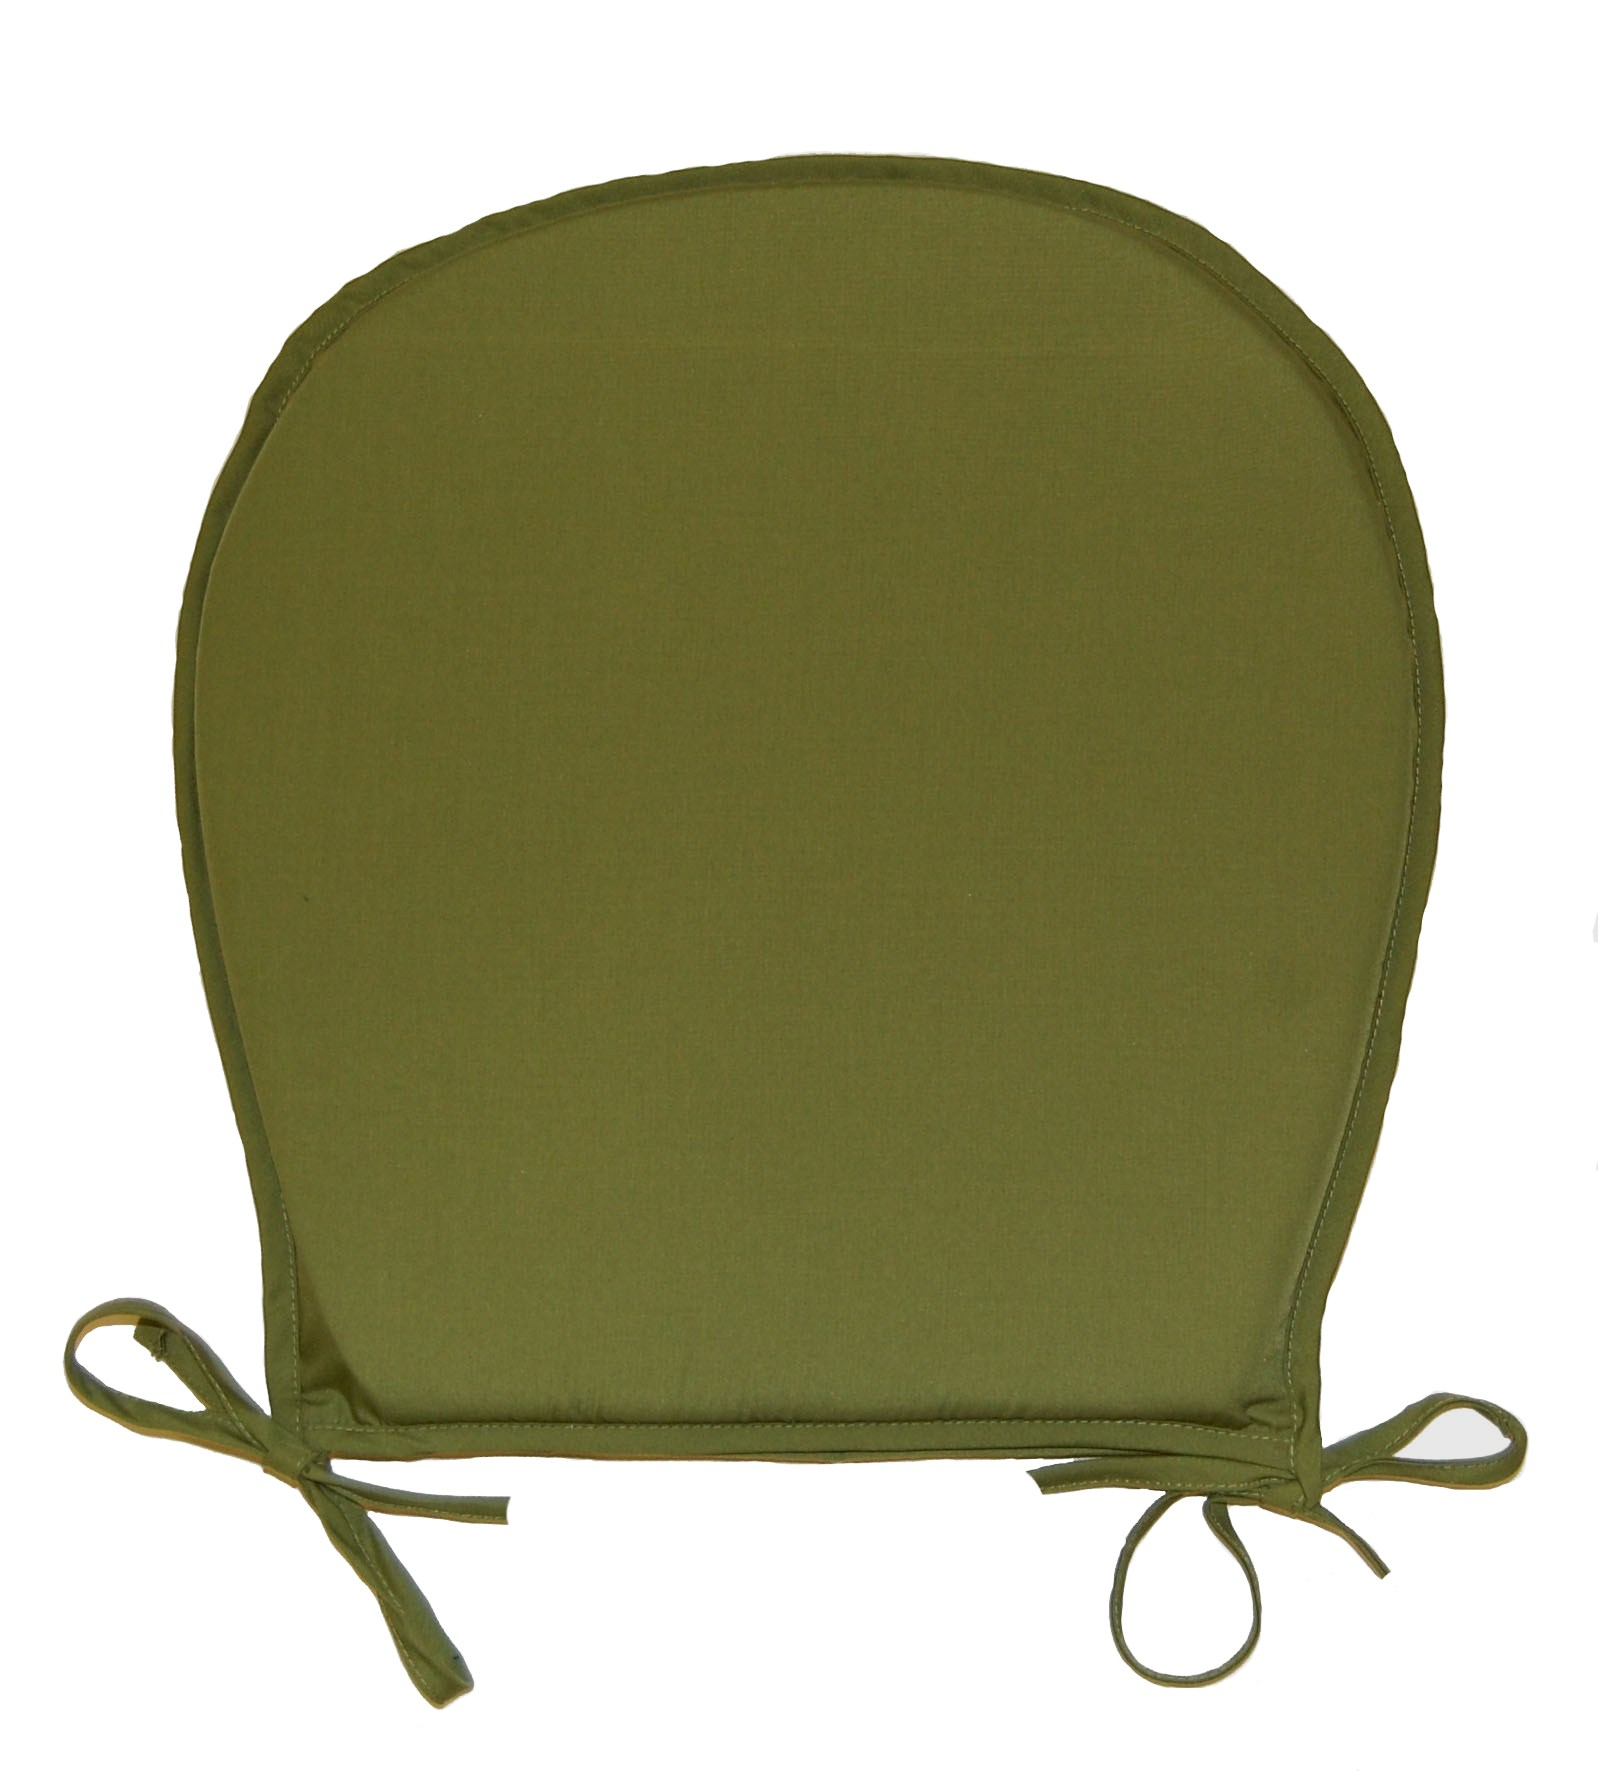 Chair Seat Pads Plain Round Kitchen Garden Furniture Cushion Pad Assorted Colour Ebay